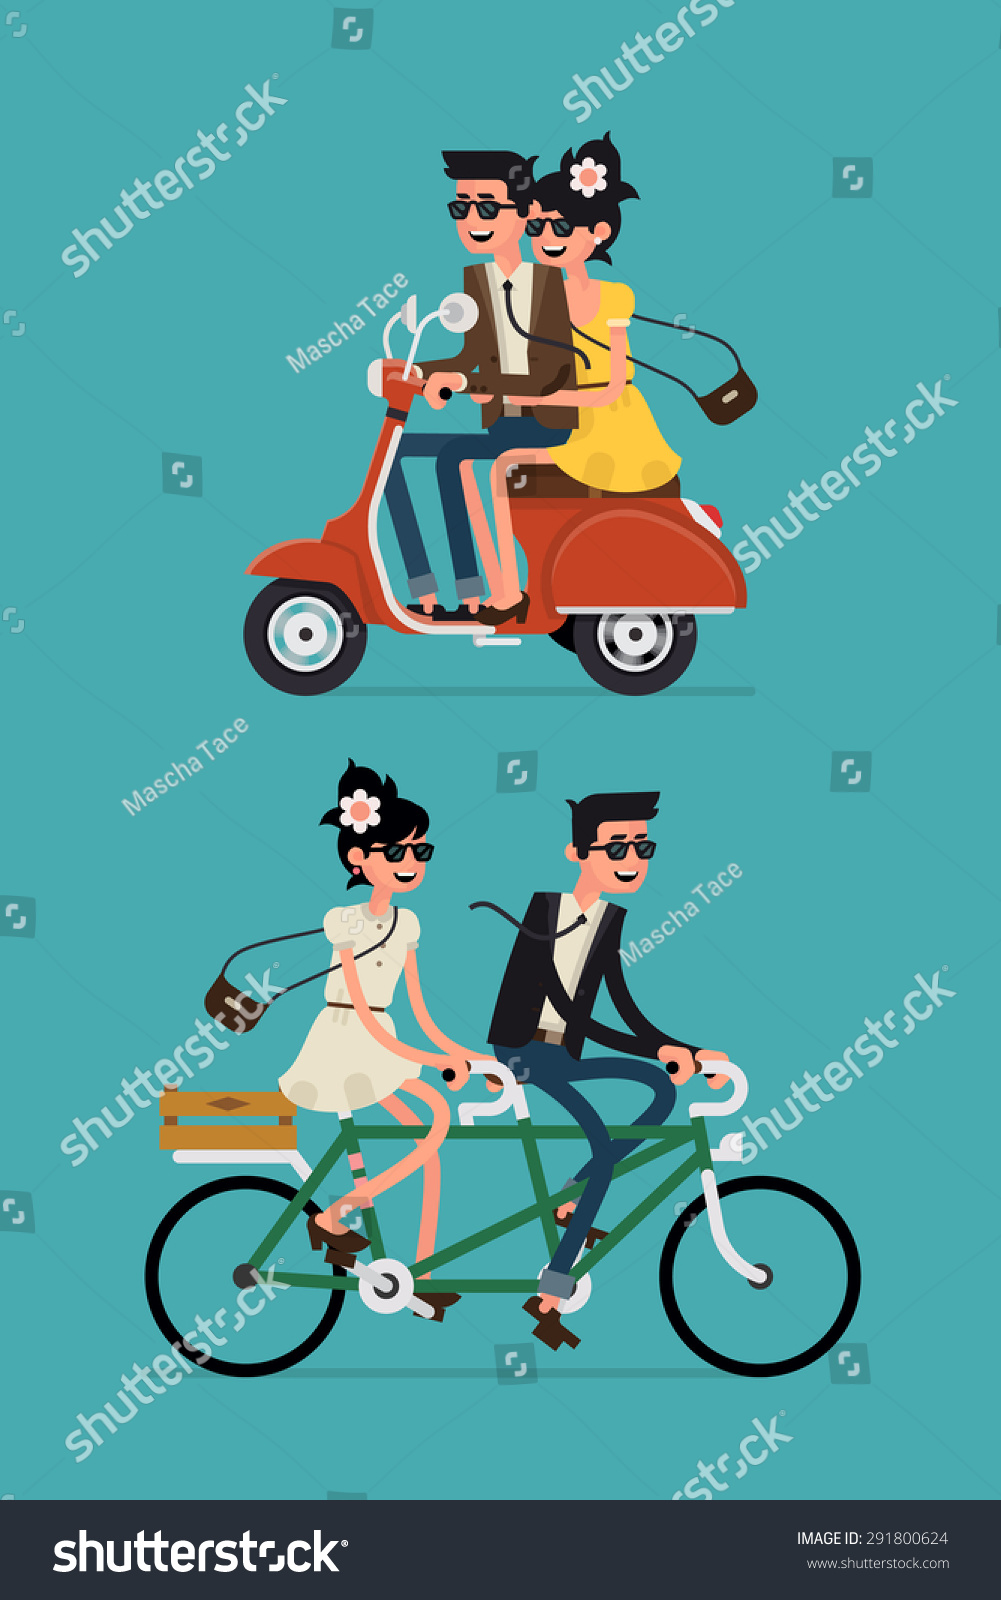 Cool vector flat design happy young man and woman characters couple riding tandem bicycle and retro city scooter isolated Young hipsters couple riding twin bike and vintage moped laughing happily